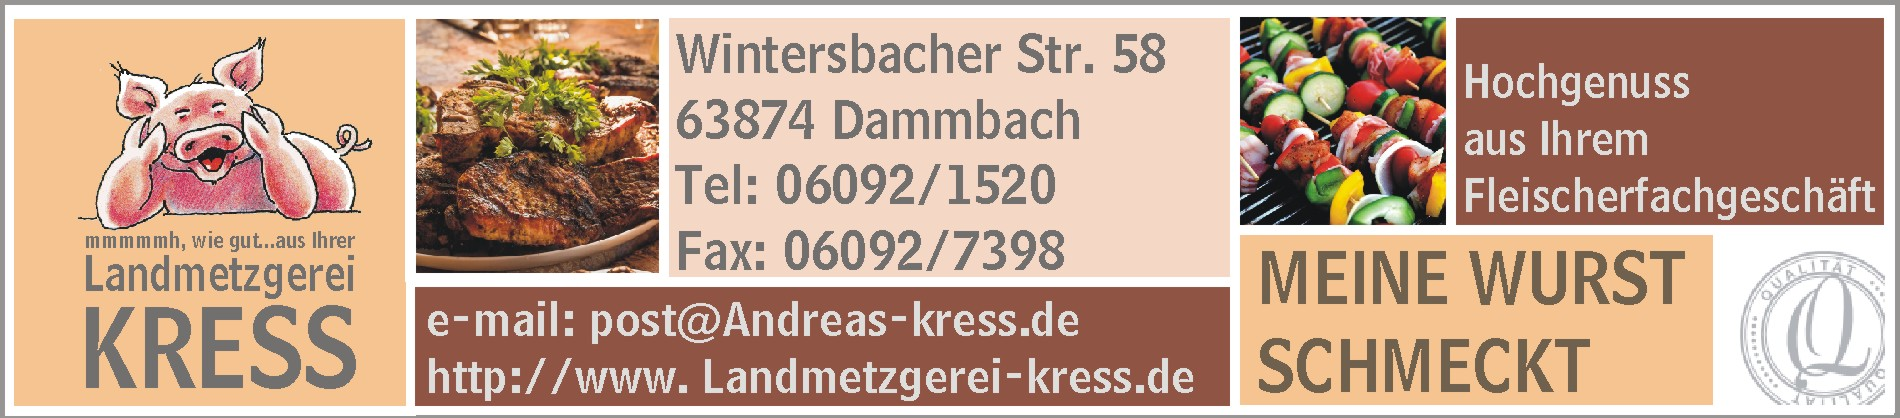 Landmetzgerei Kress